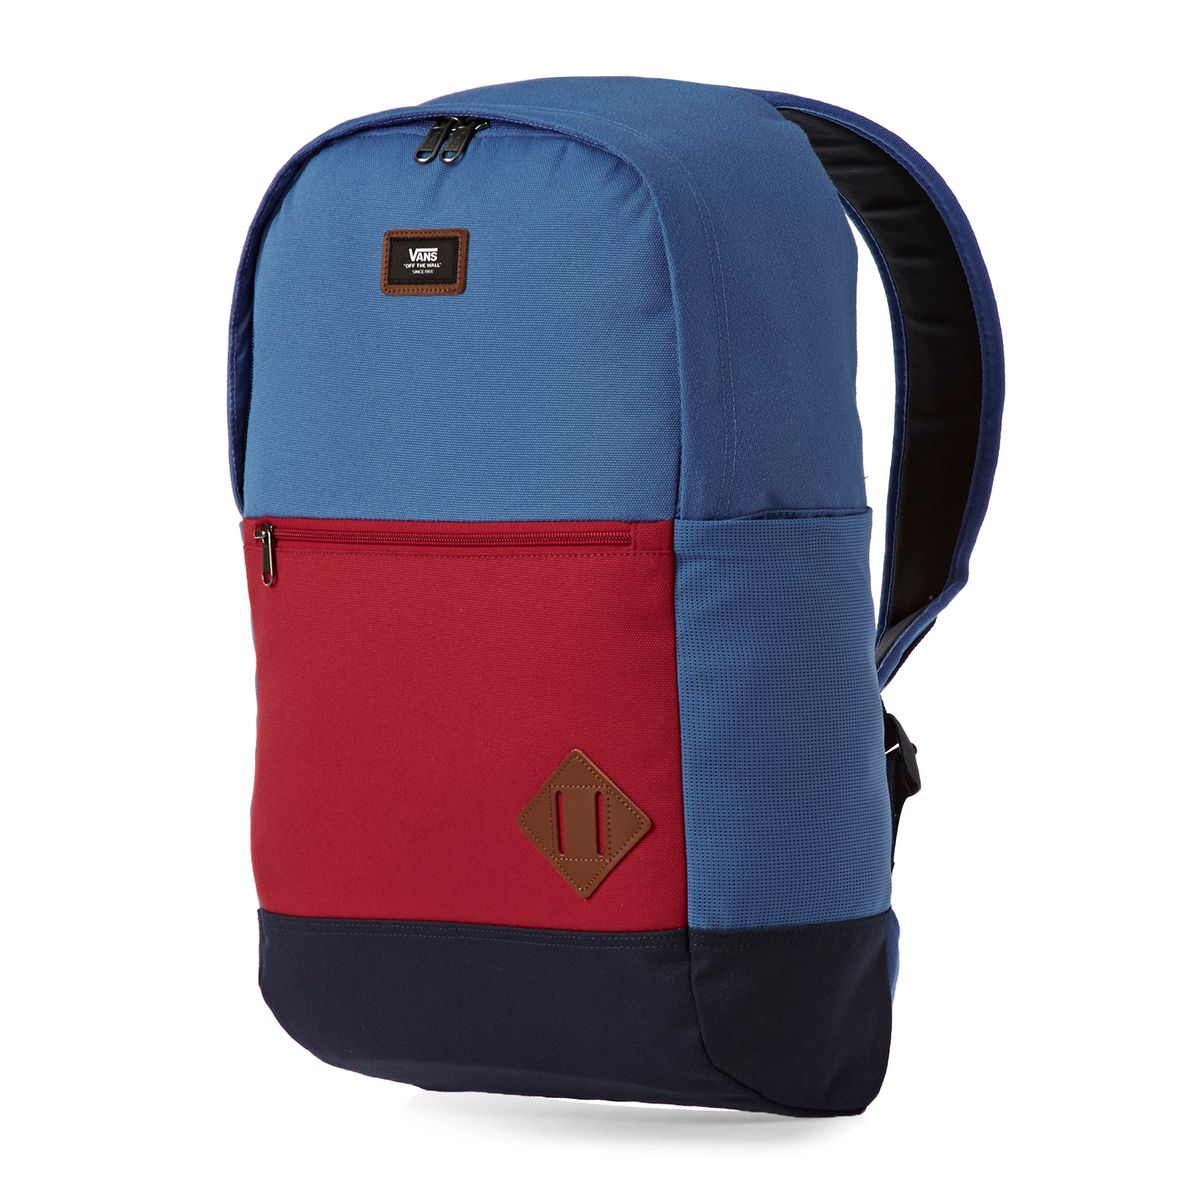 vans-backpacks-vans-van-doren-iii-backpack-delft-colorblock